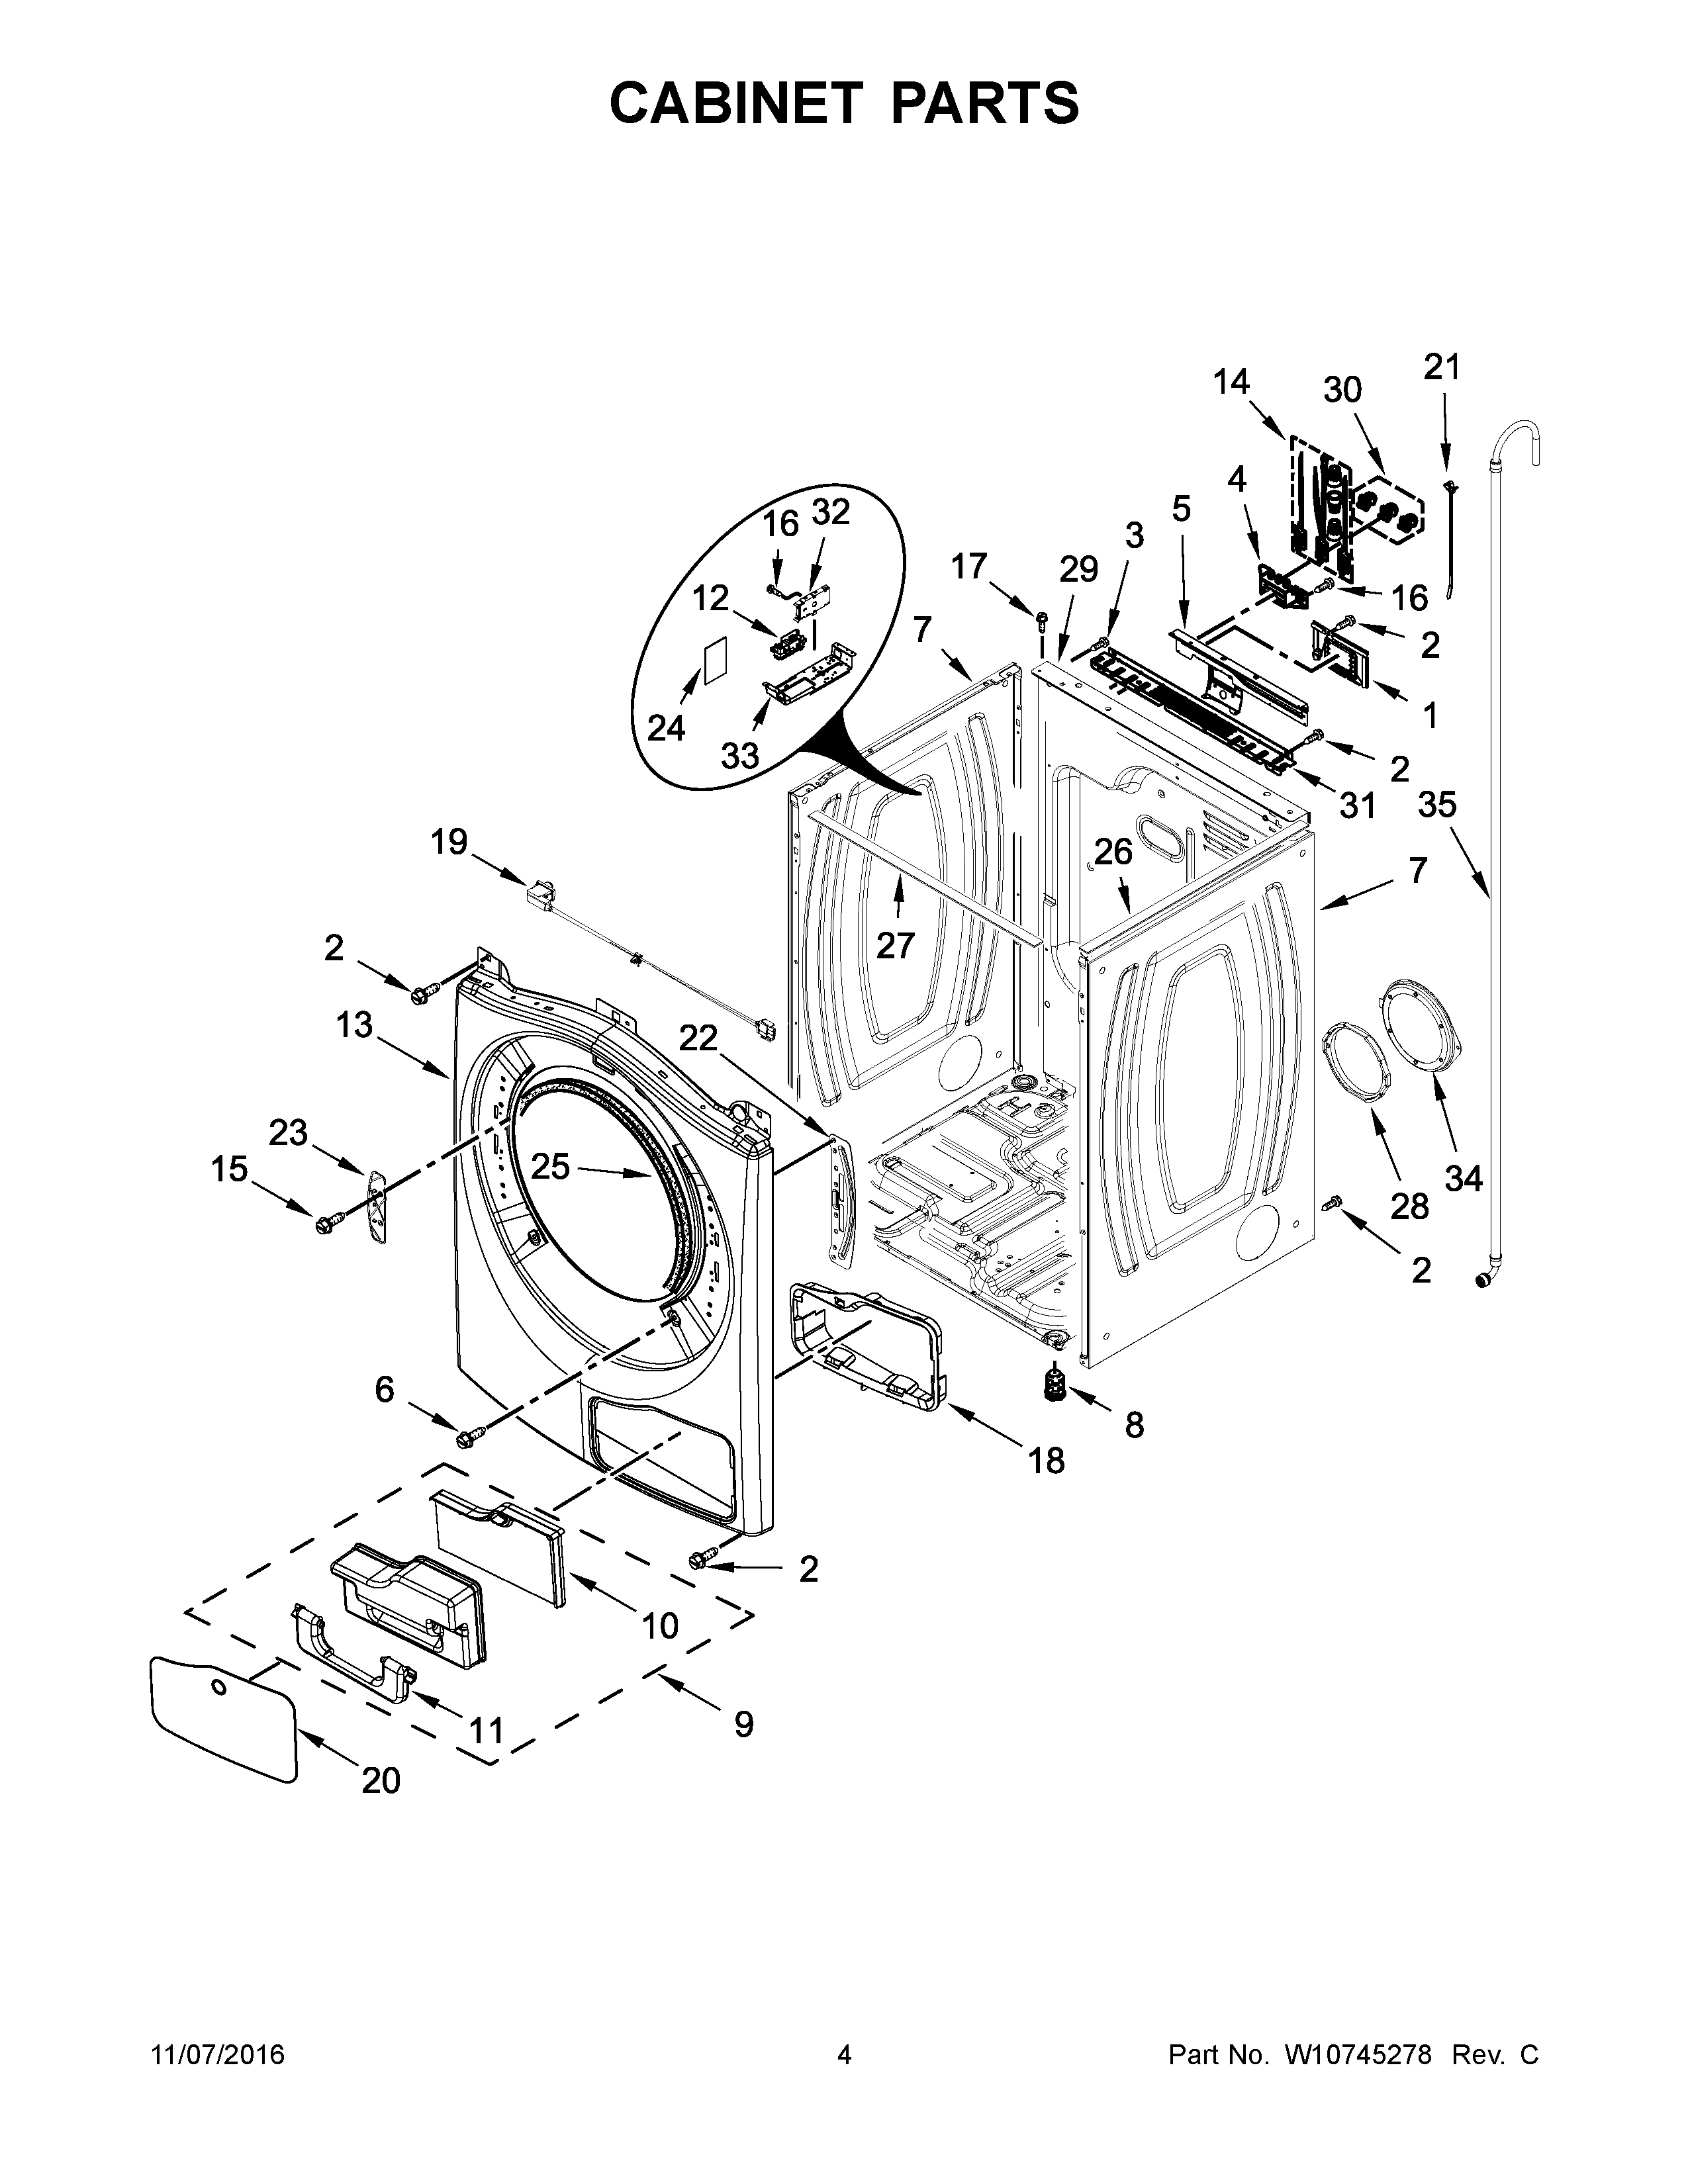 Whirlpool WED99HEDC0 cabinet parts diagram